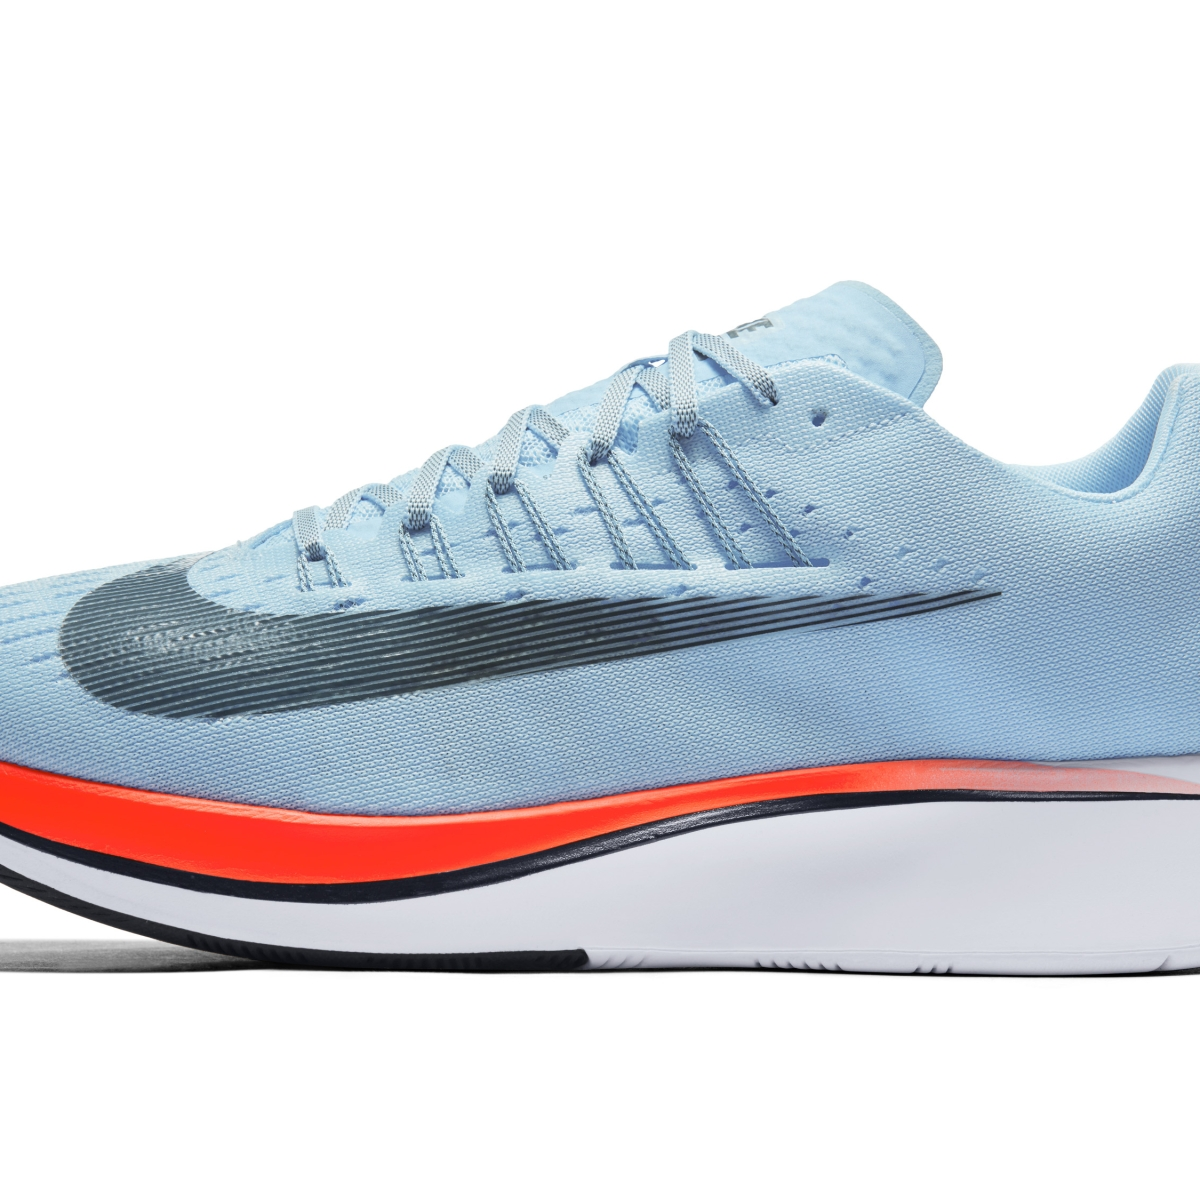 7114fec0a6f65 You Can Now Buy Nike s Much-Hyped ZoomFlys — But Should You  - Men s Journal